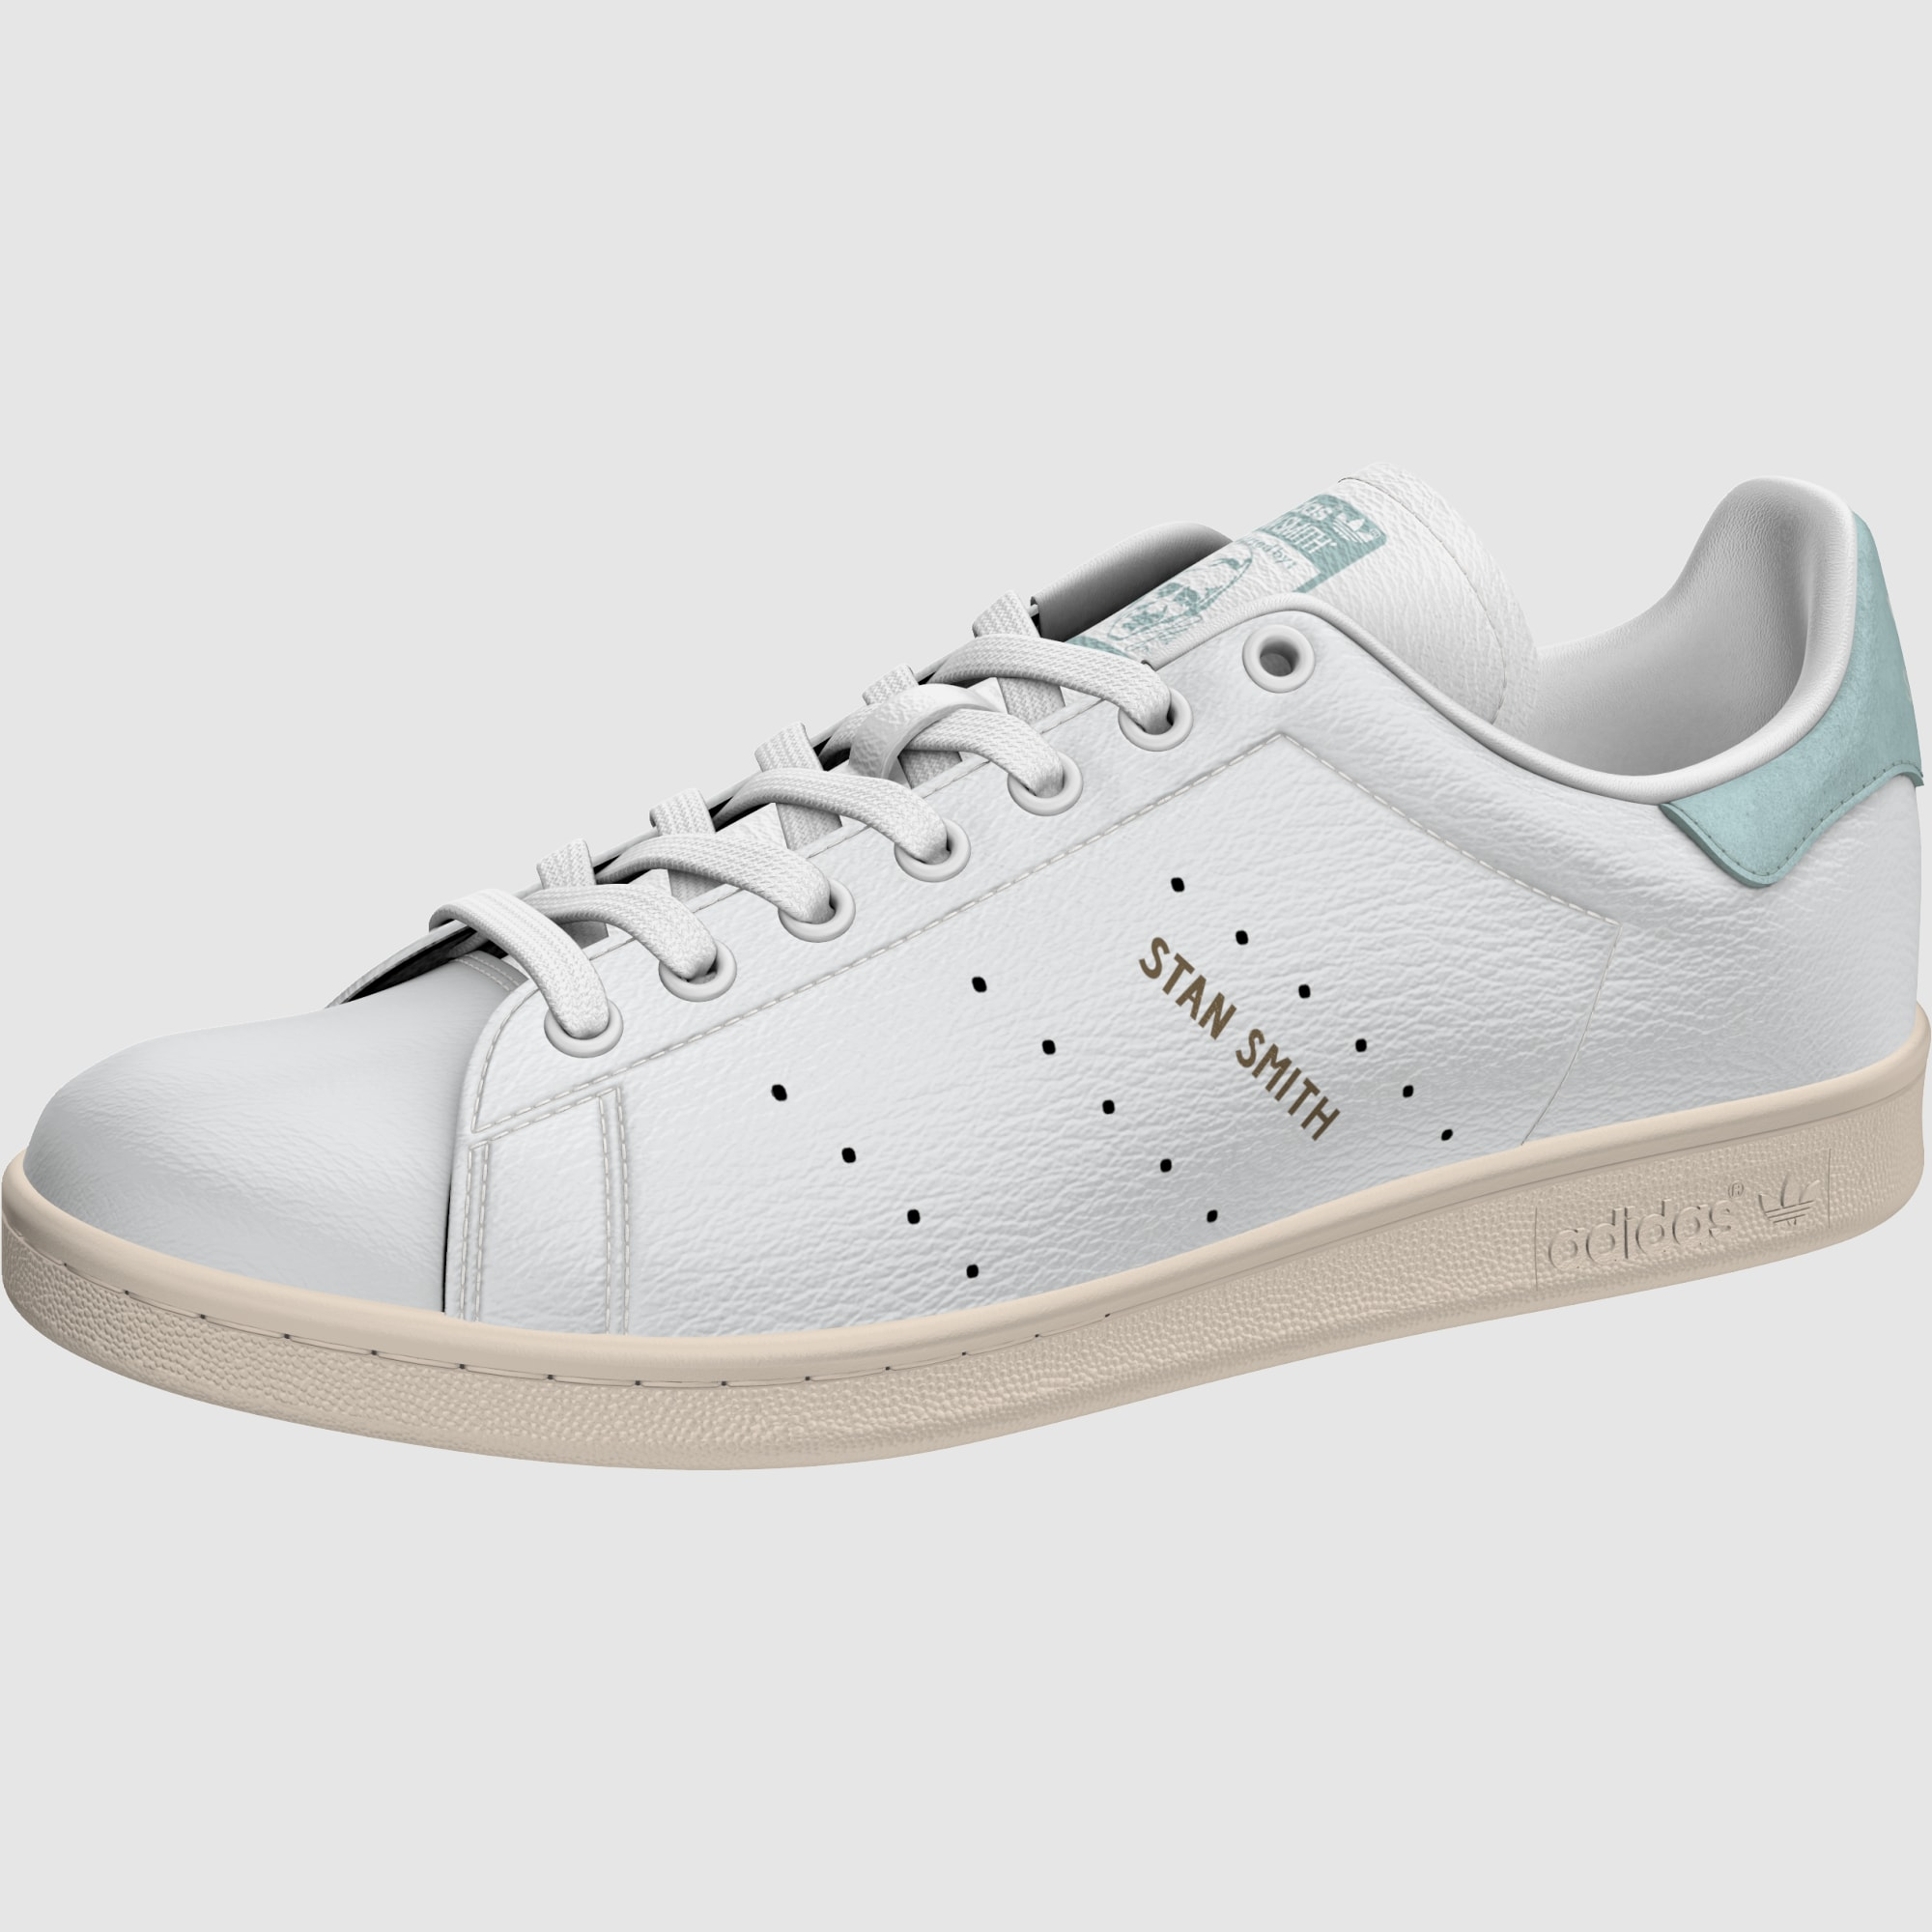 adidas originals 39 stan smith 39 schuh in wei about you. Black Bedroom Furniture Sets. Home Design Ideas